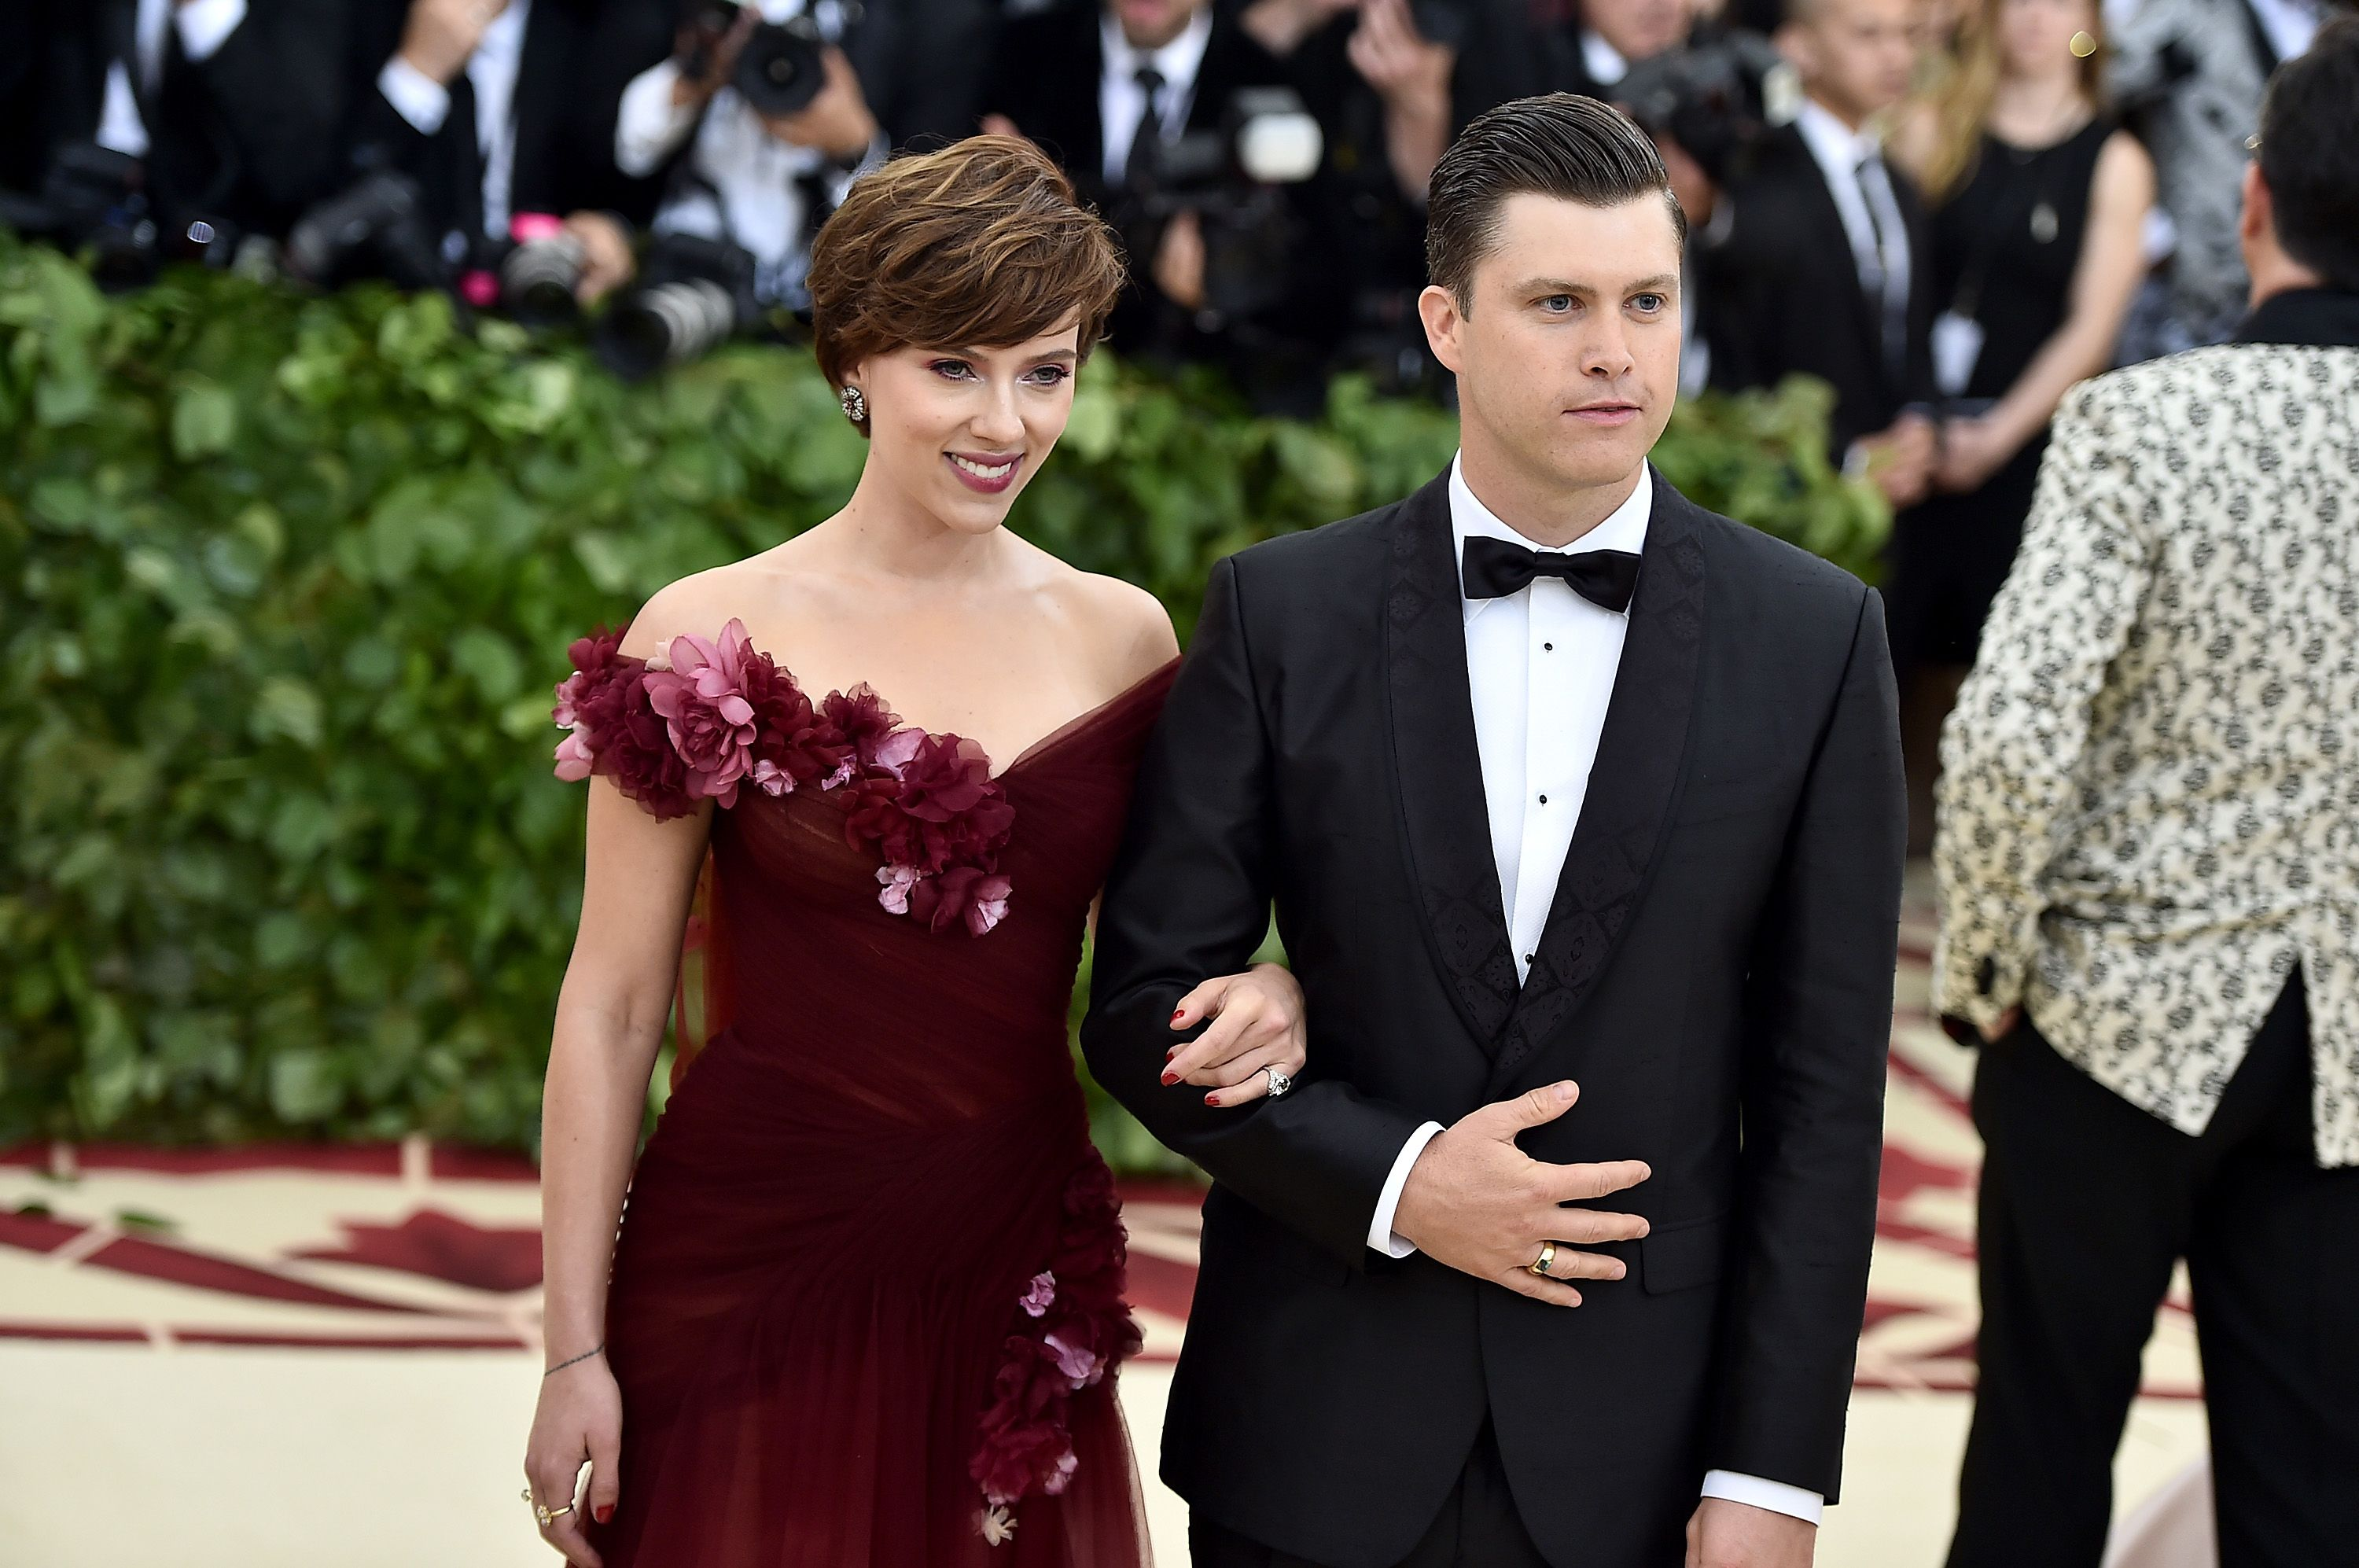 Scarlett Johansson and Colin Jost at the 2018 MET Gala in New York City | Source: Getty Images